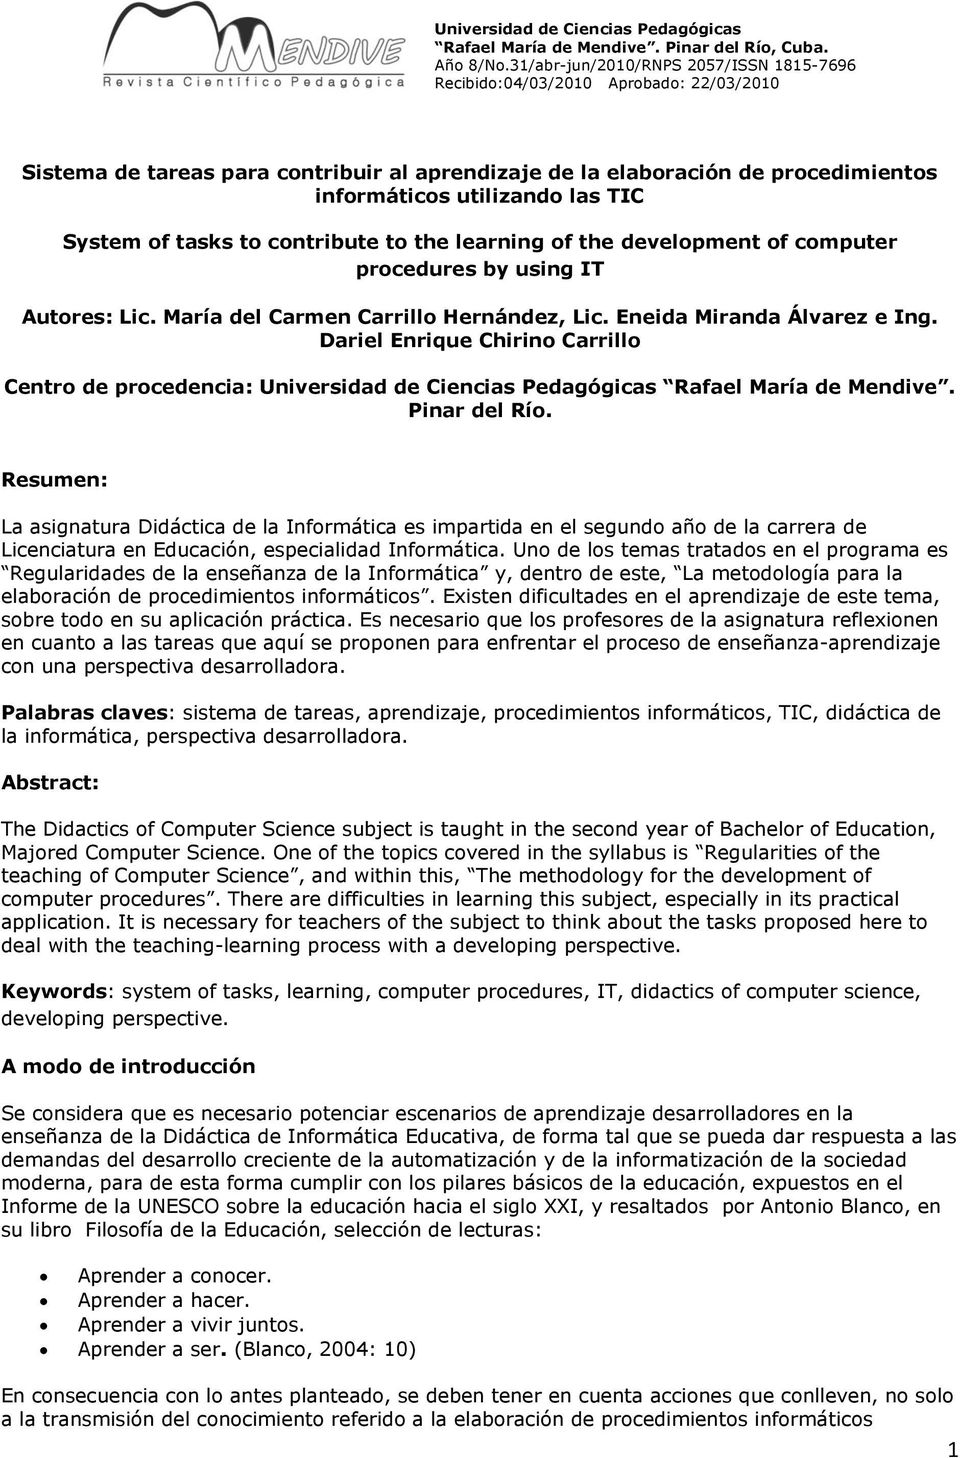 System of tasks to contribute to the learning of the development of computer procedures by using IT Autores: Lic. María del Carmen Carrillo Hernández, Lic. Eneida Miranda Álvarez e Ing.